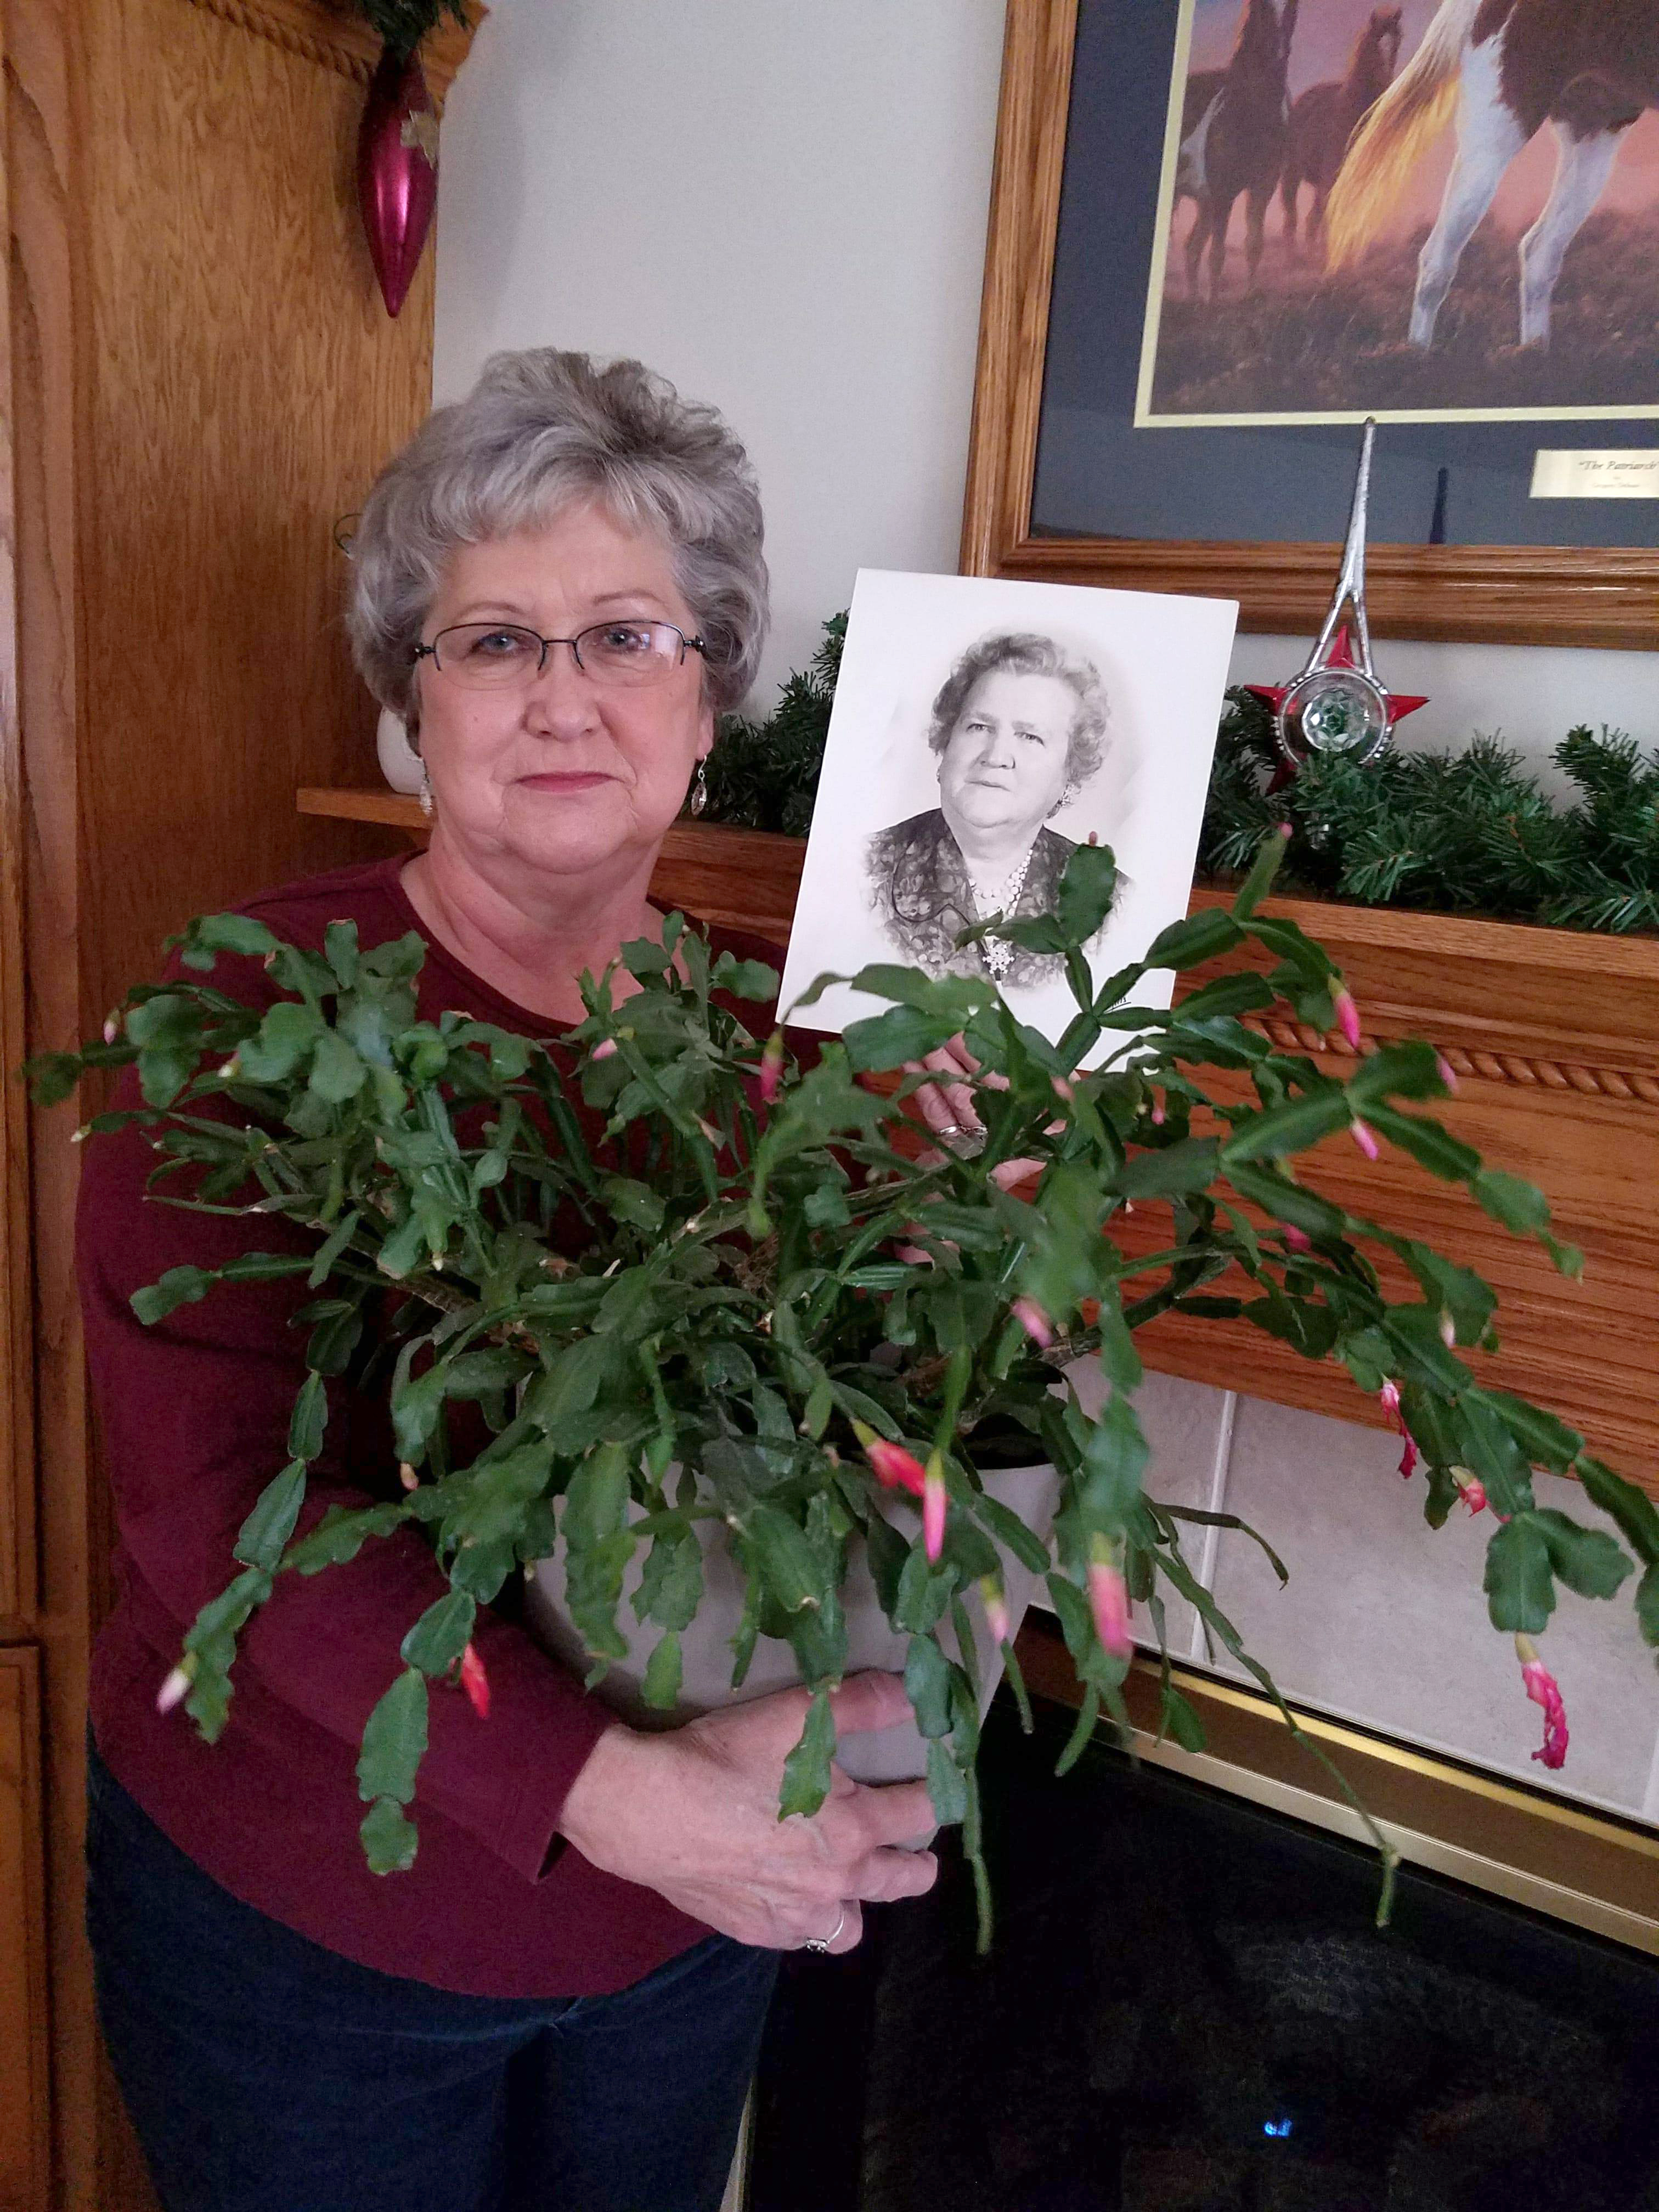 Becky Little White has a Christmas cactus grown from cuttings of her grandmother's cactus. Her grandmother Lois Little (in photo) had 21 children and 75 grandchildren at the time of her death in 1965. Many of them celebrate Christmas with the blooming of